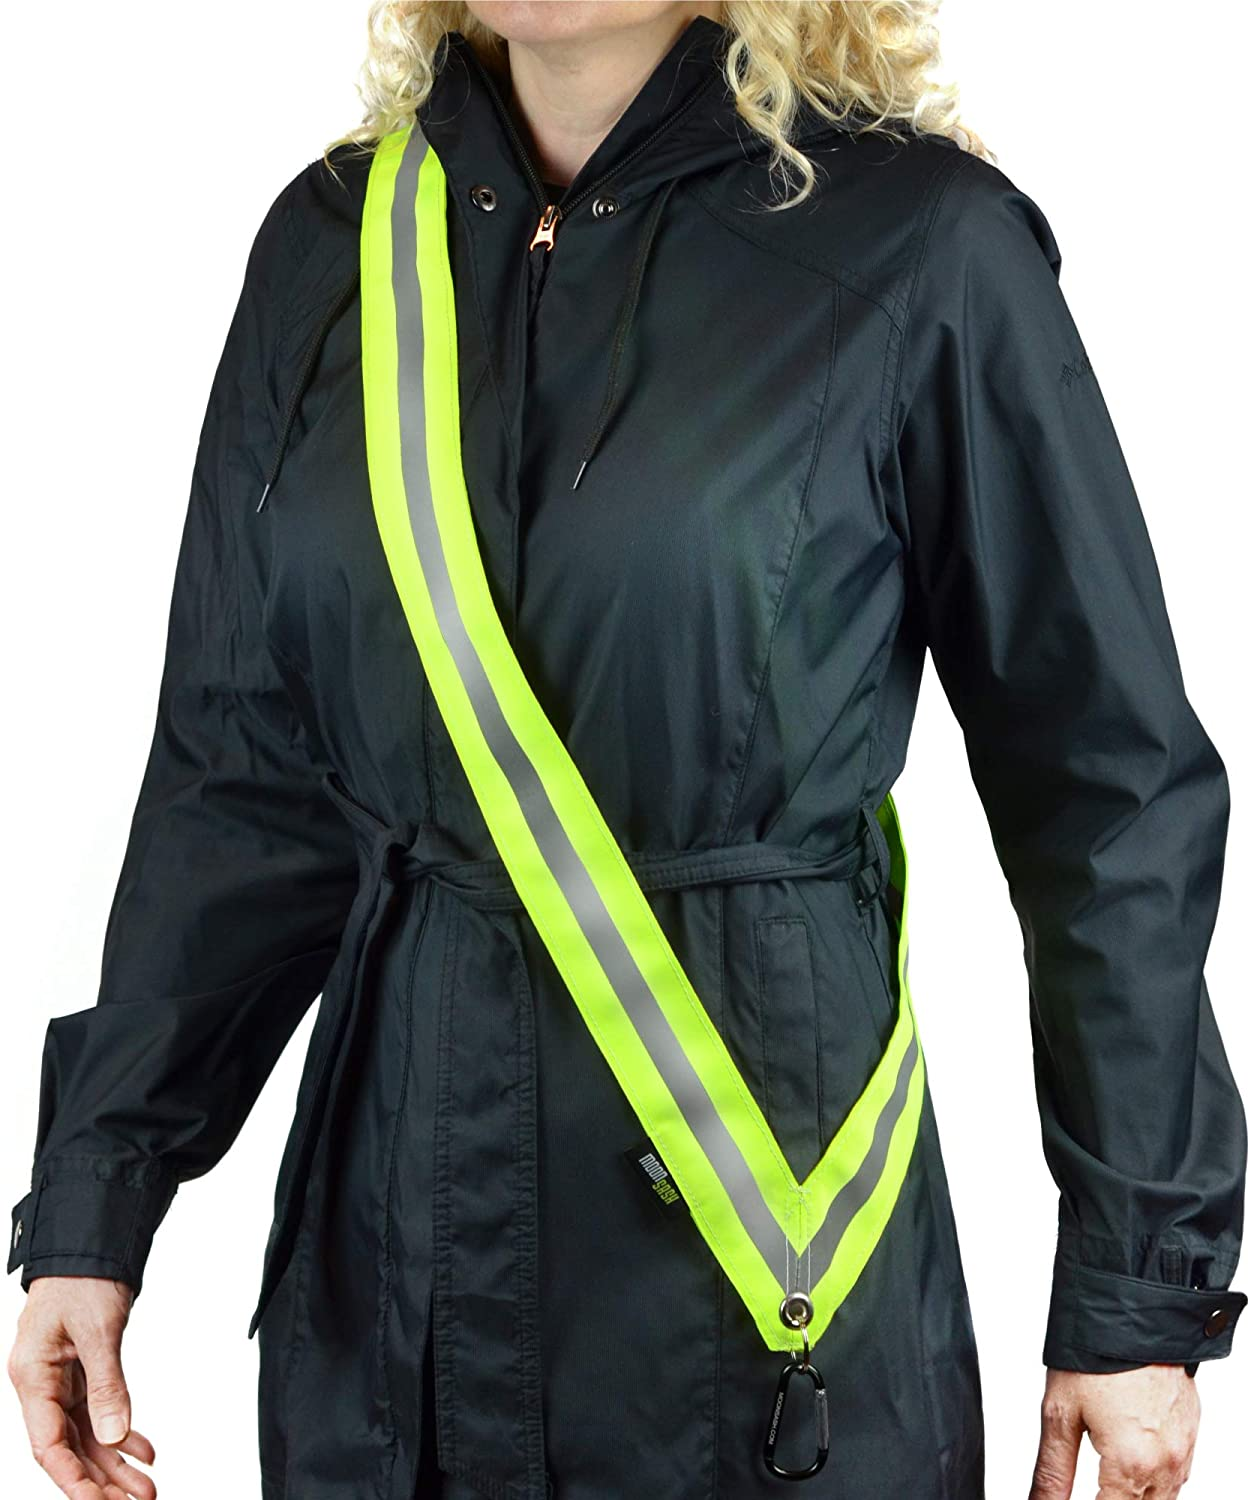 MOONSASH > MADE Attention brand in Max 48% OFF USA Patented Reflective Walk for Night Gear